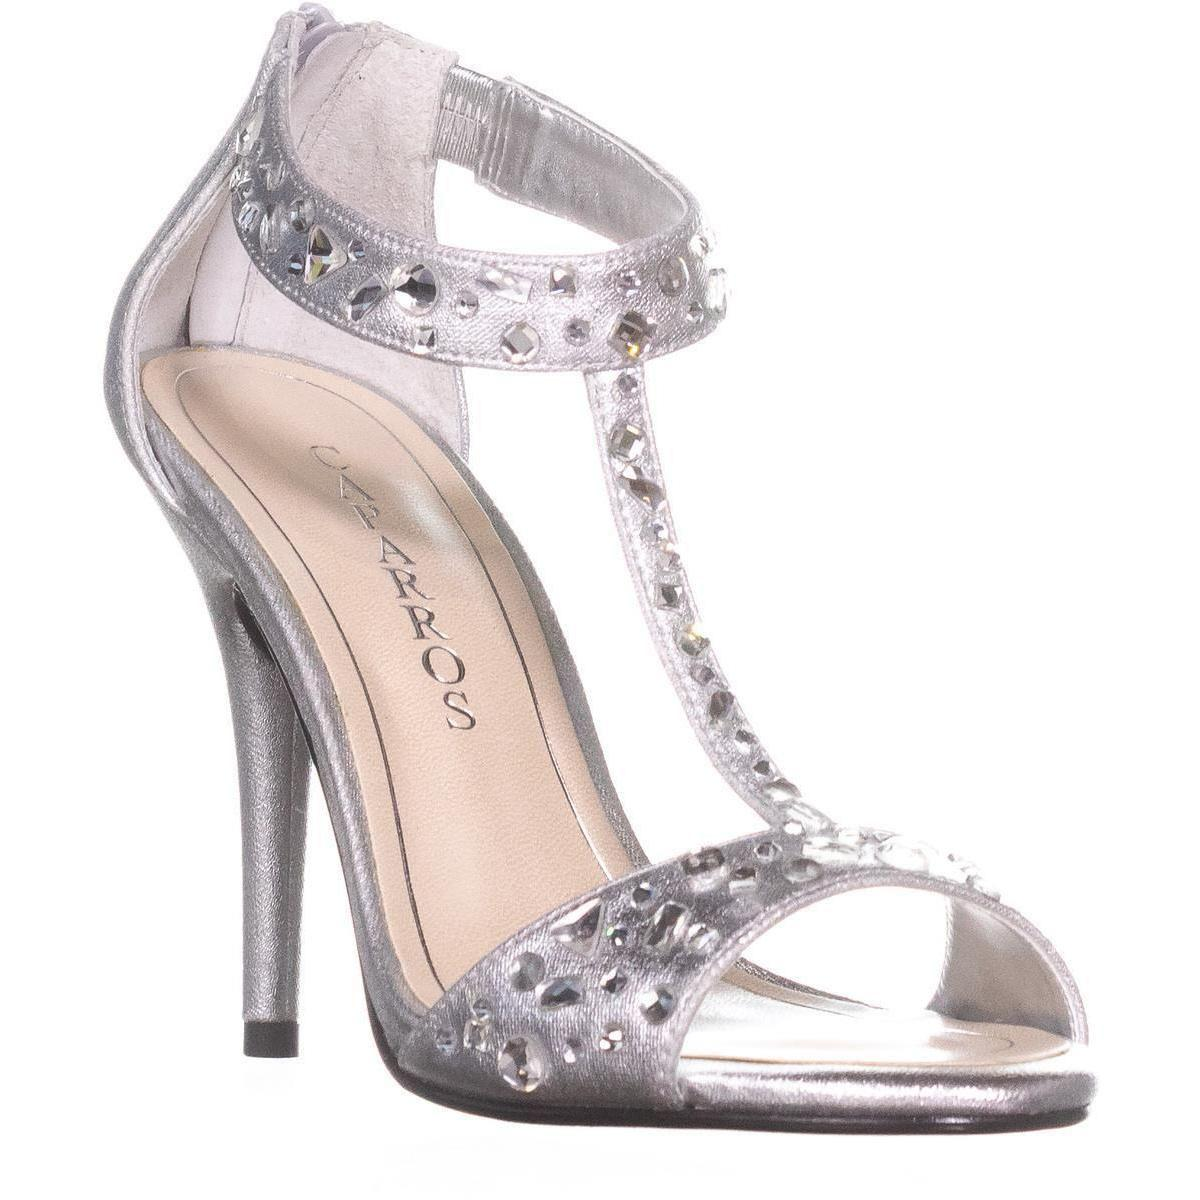 7b807fbf8 Lyst - Caparros Esther T-strap Evening Sandals in Metallic - Save 12%